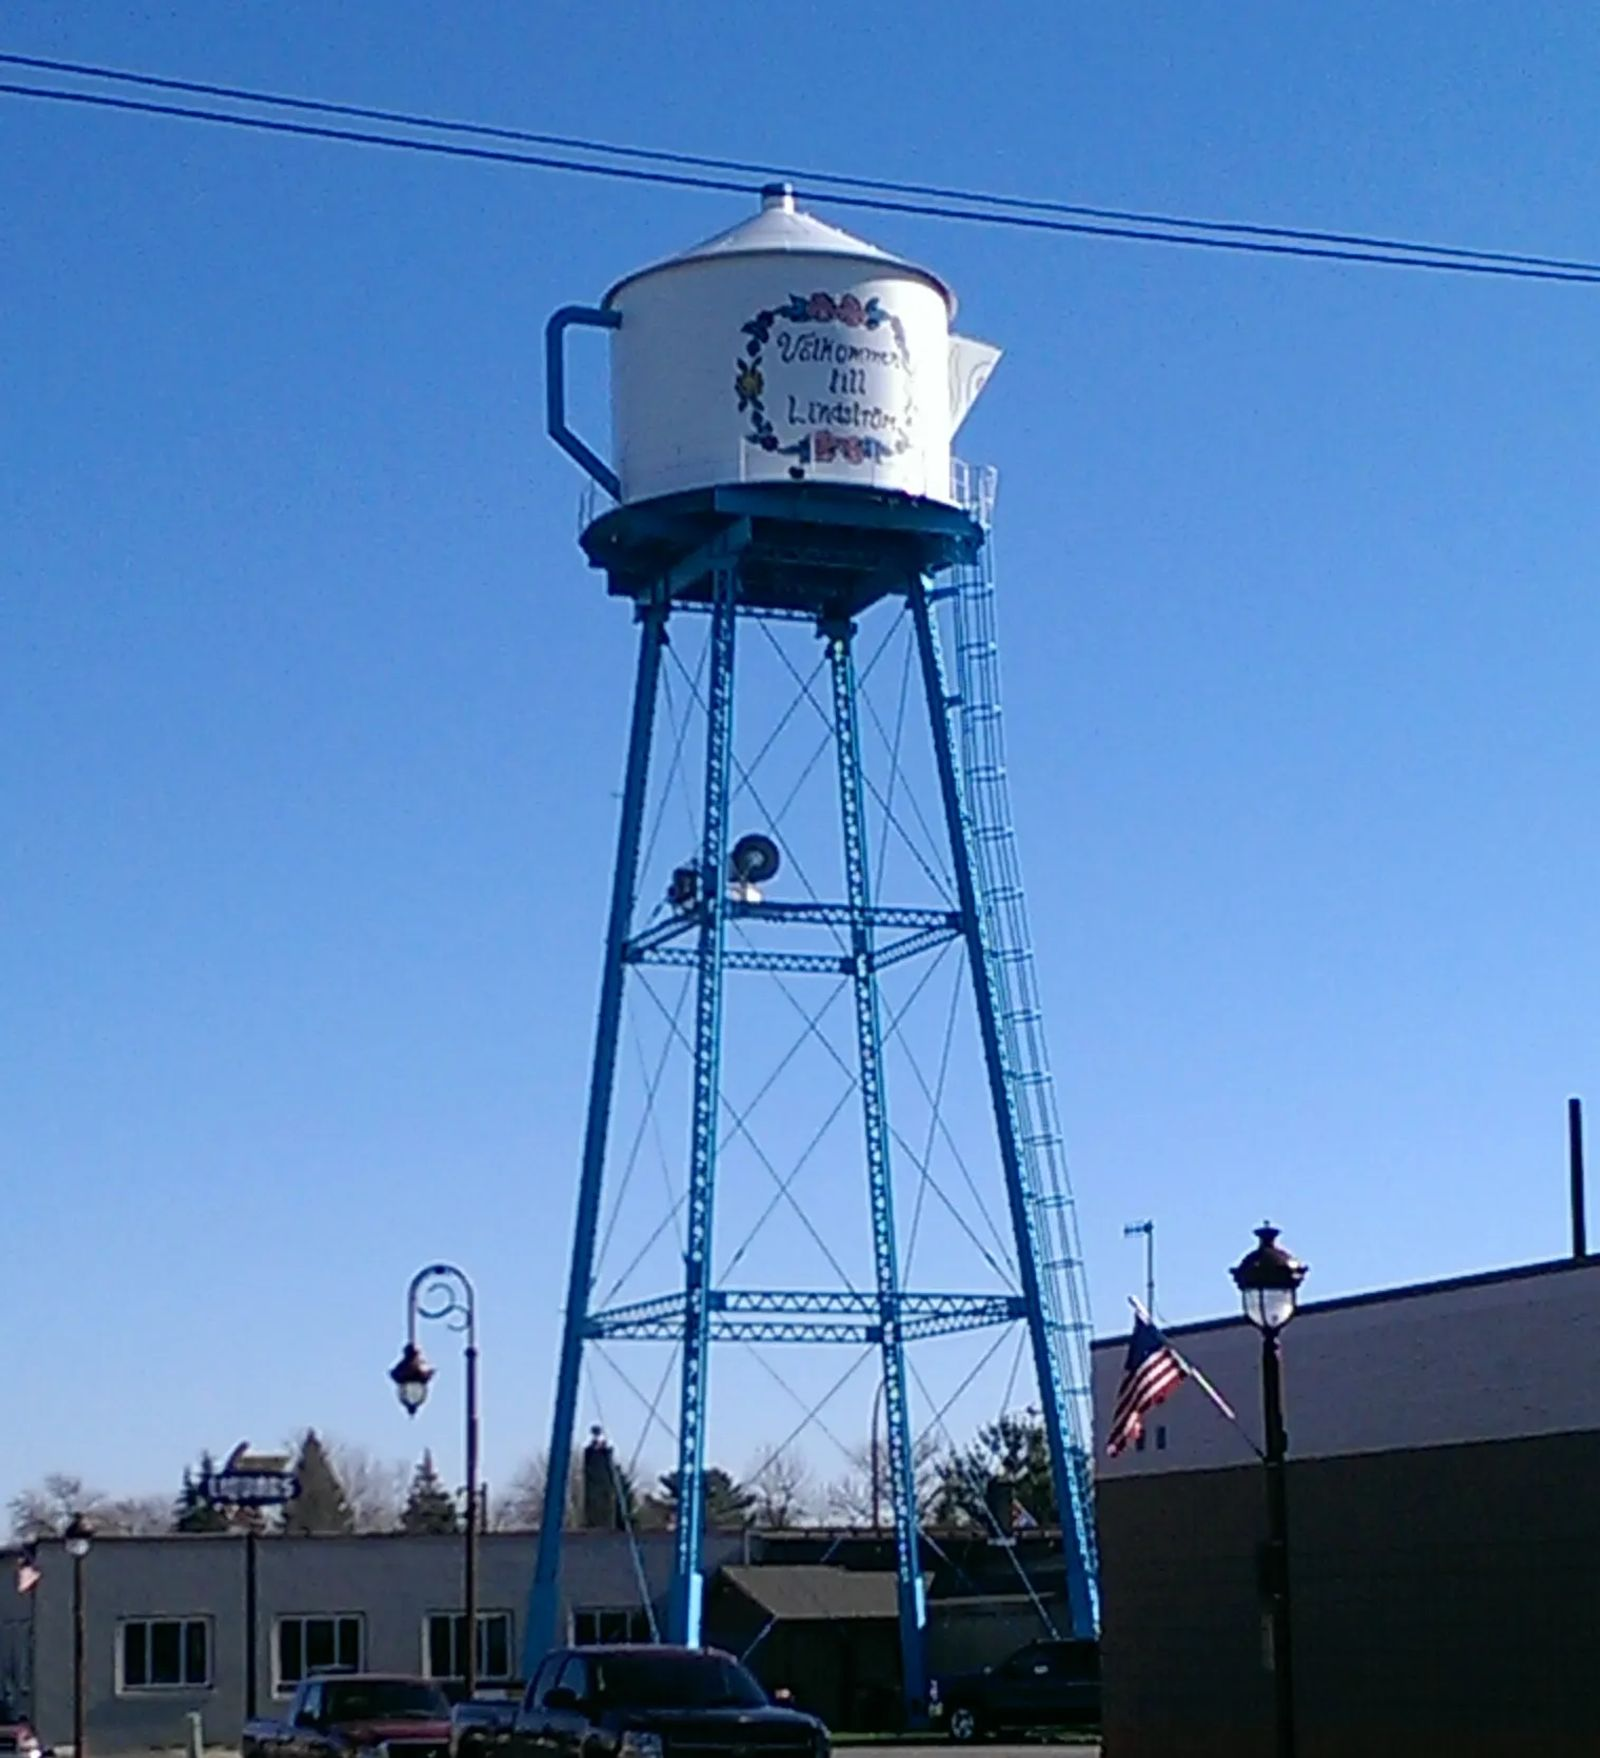 Photo of the Coffee Pot Welcome and Water Tower in Lindstrom, Minnesota